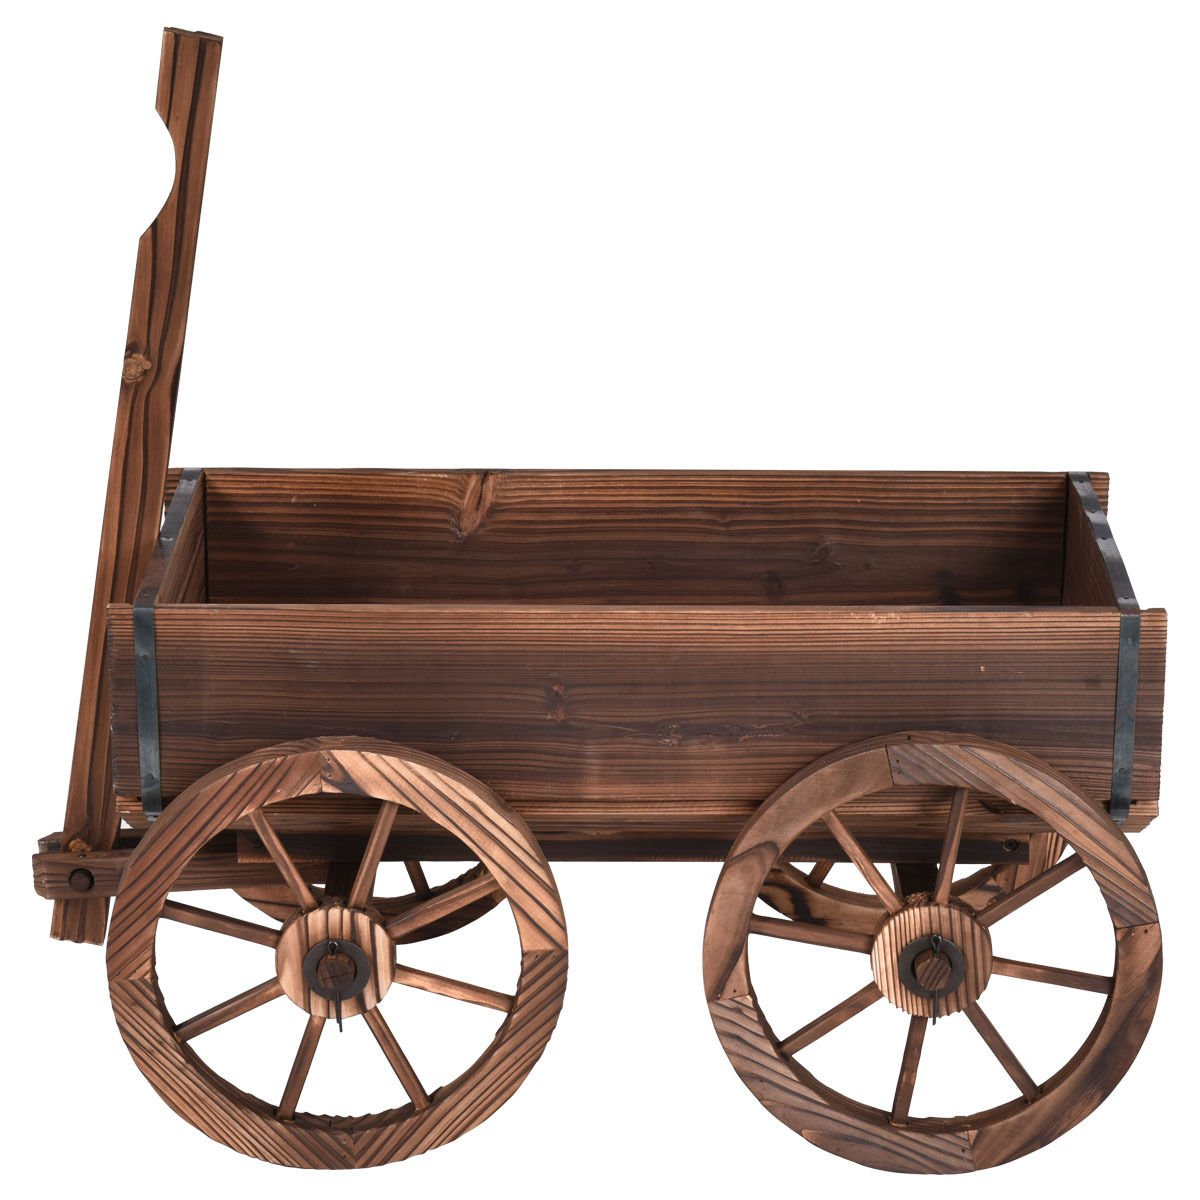 Wood wagon flower planter pot stand wheels home garden outdoor decor for rustic design and antique look you will complement your outdoor décor. by Heaven Tvcz